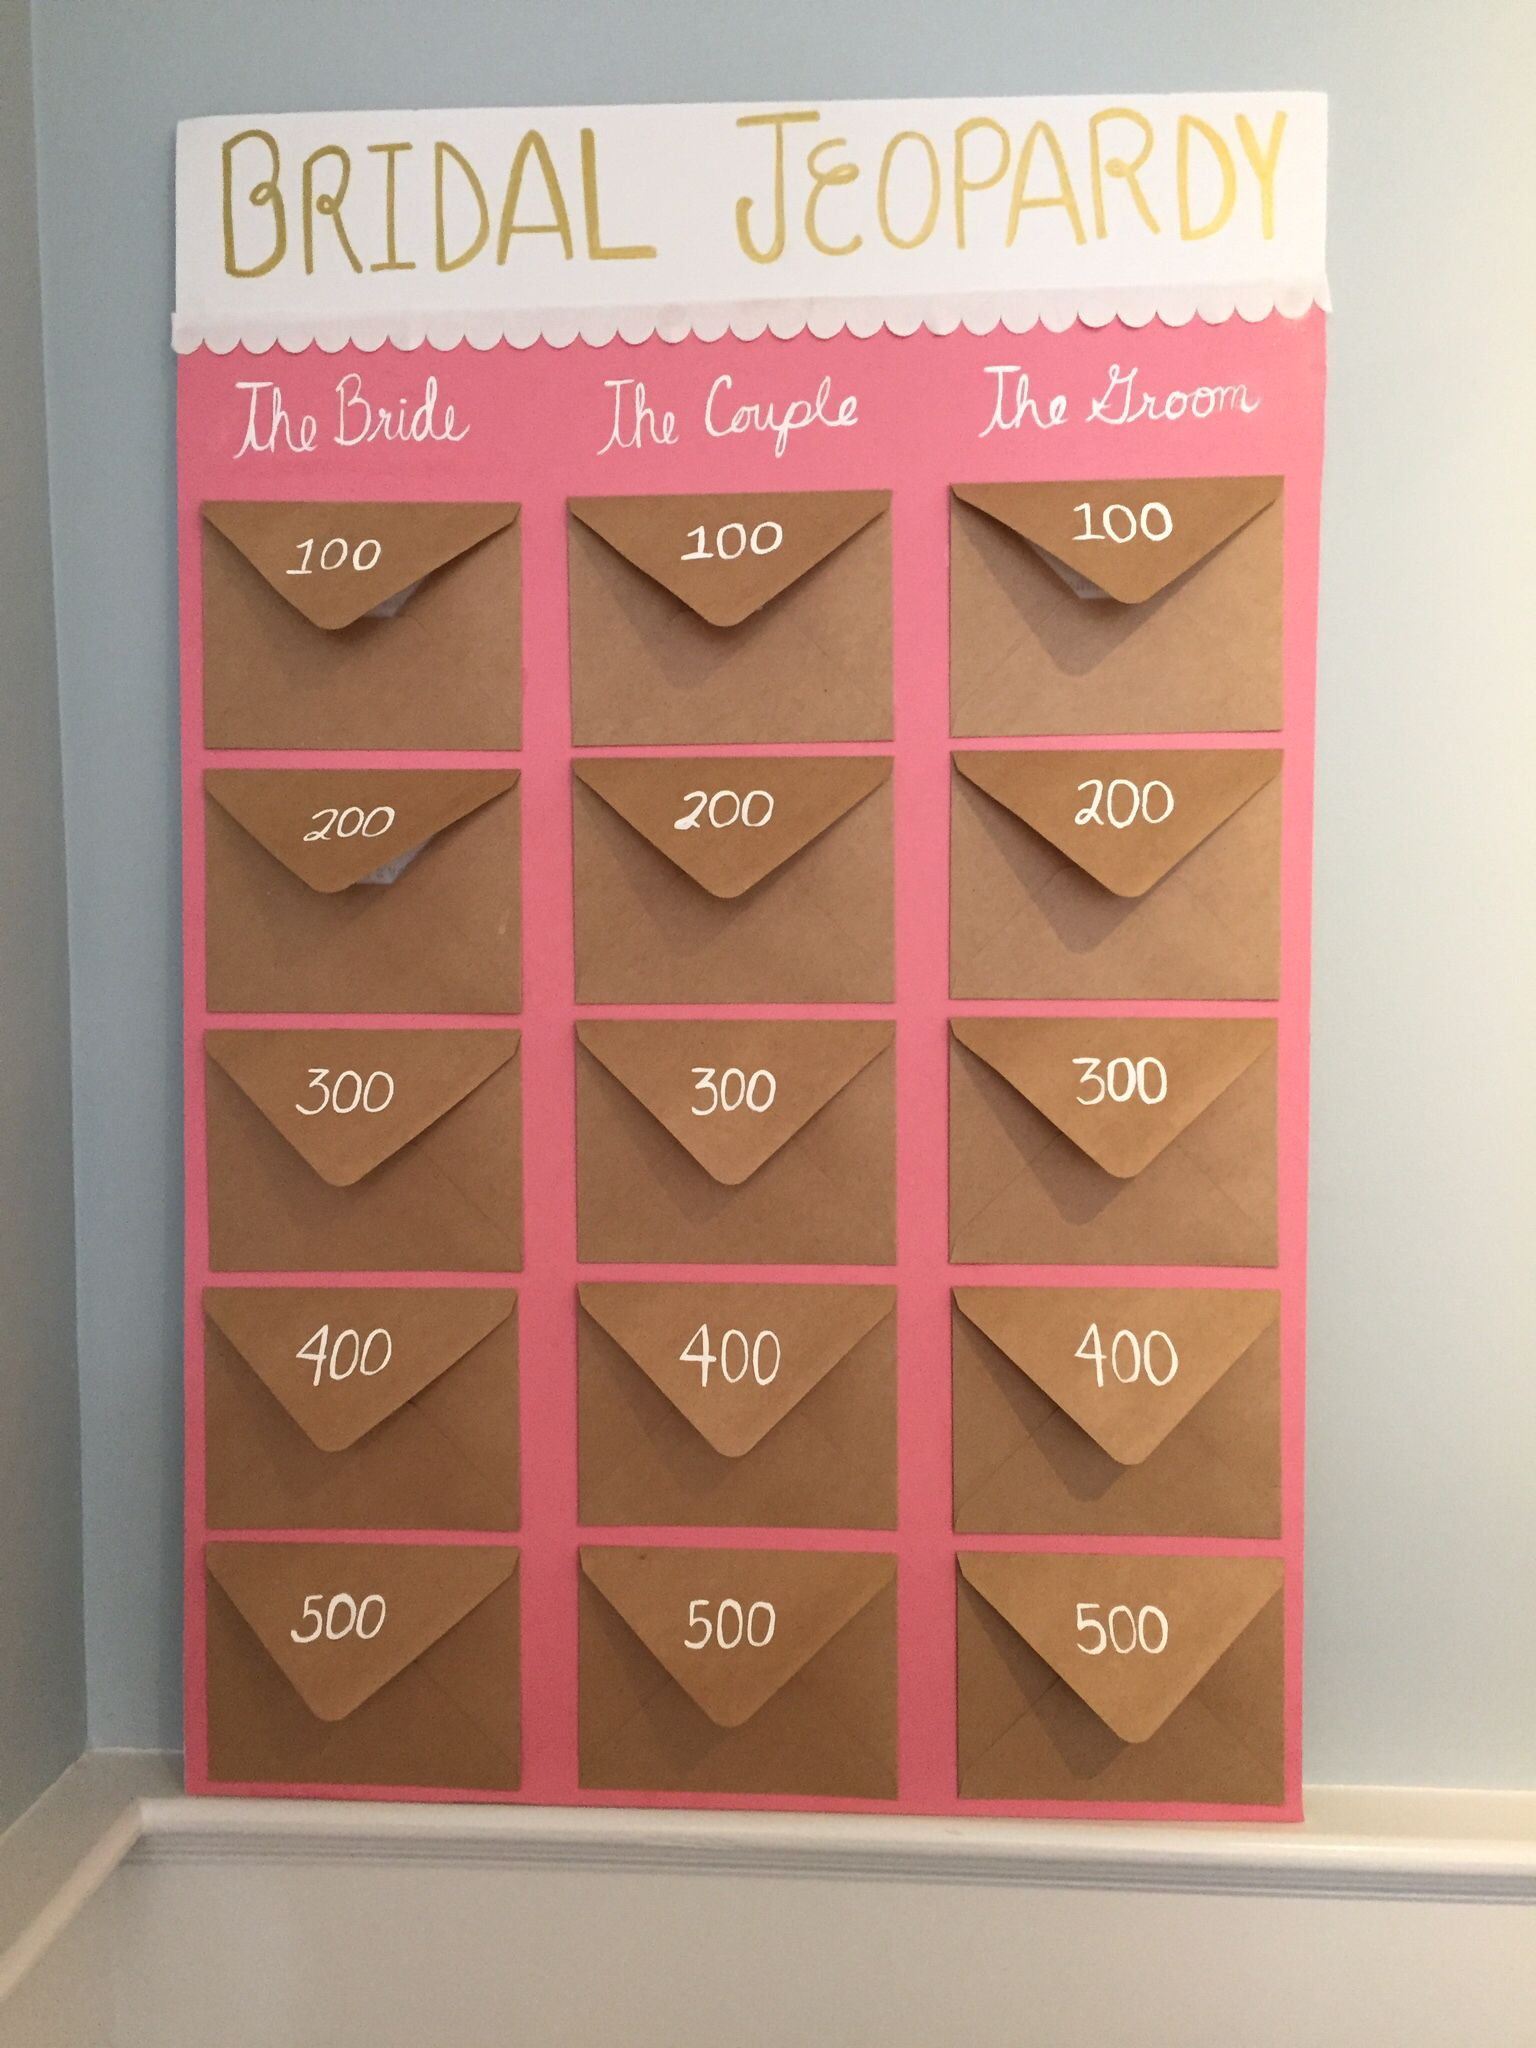 Pinterest wedding shower - Bridal Jeopardy For Pink And Gold Bridal Shower